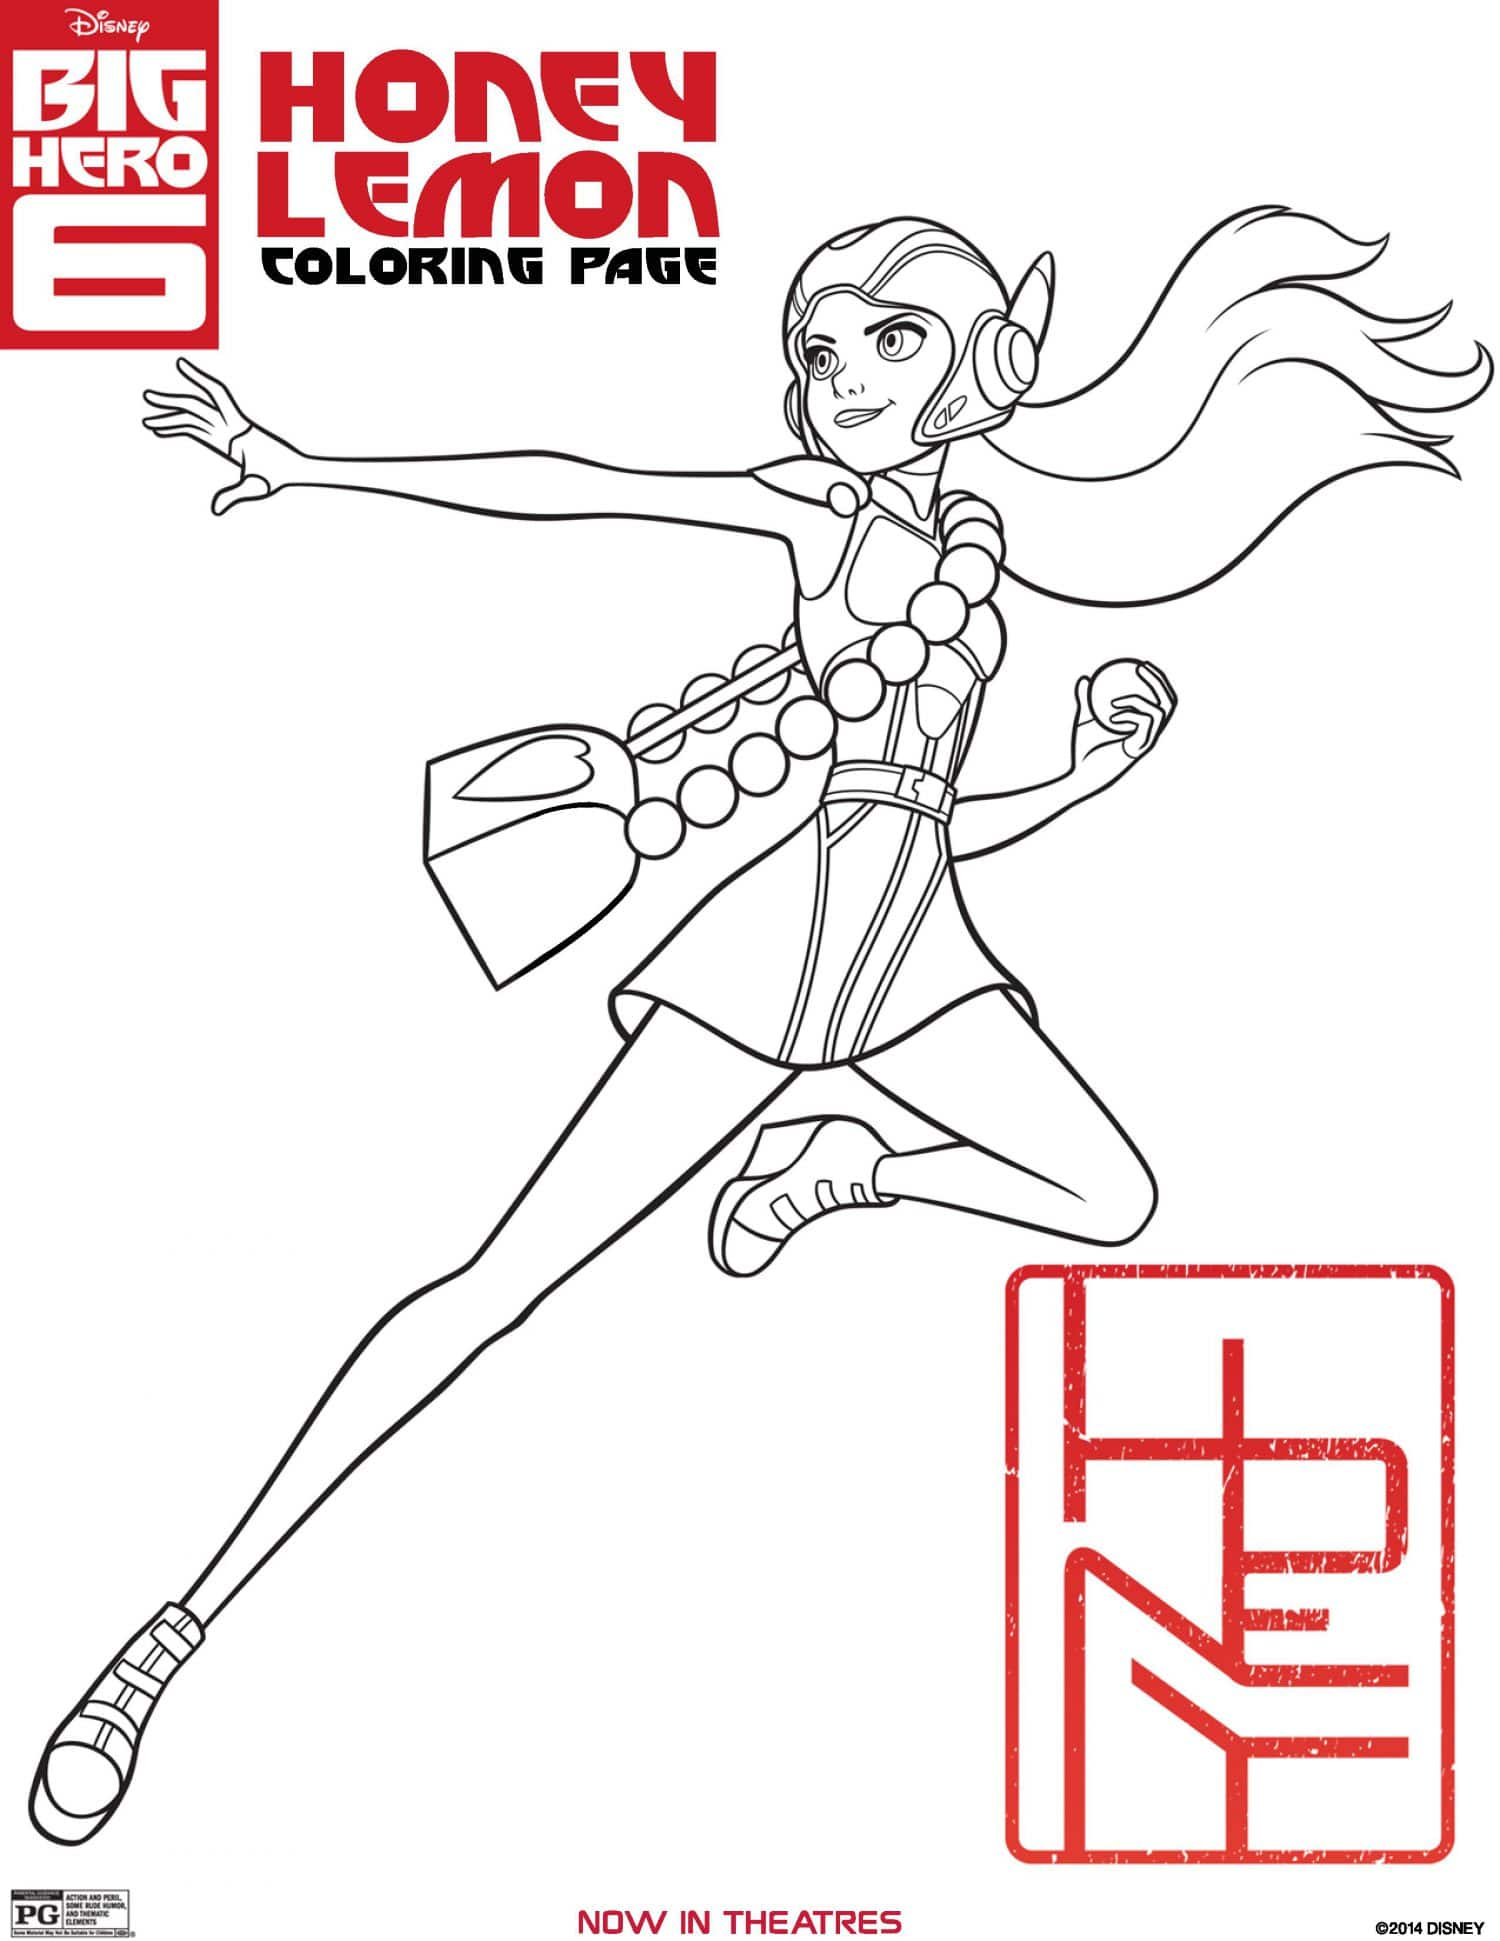 big hero 6 coloring page honey lemon - Activity Coloring Sheets